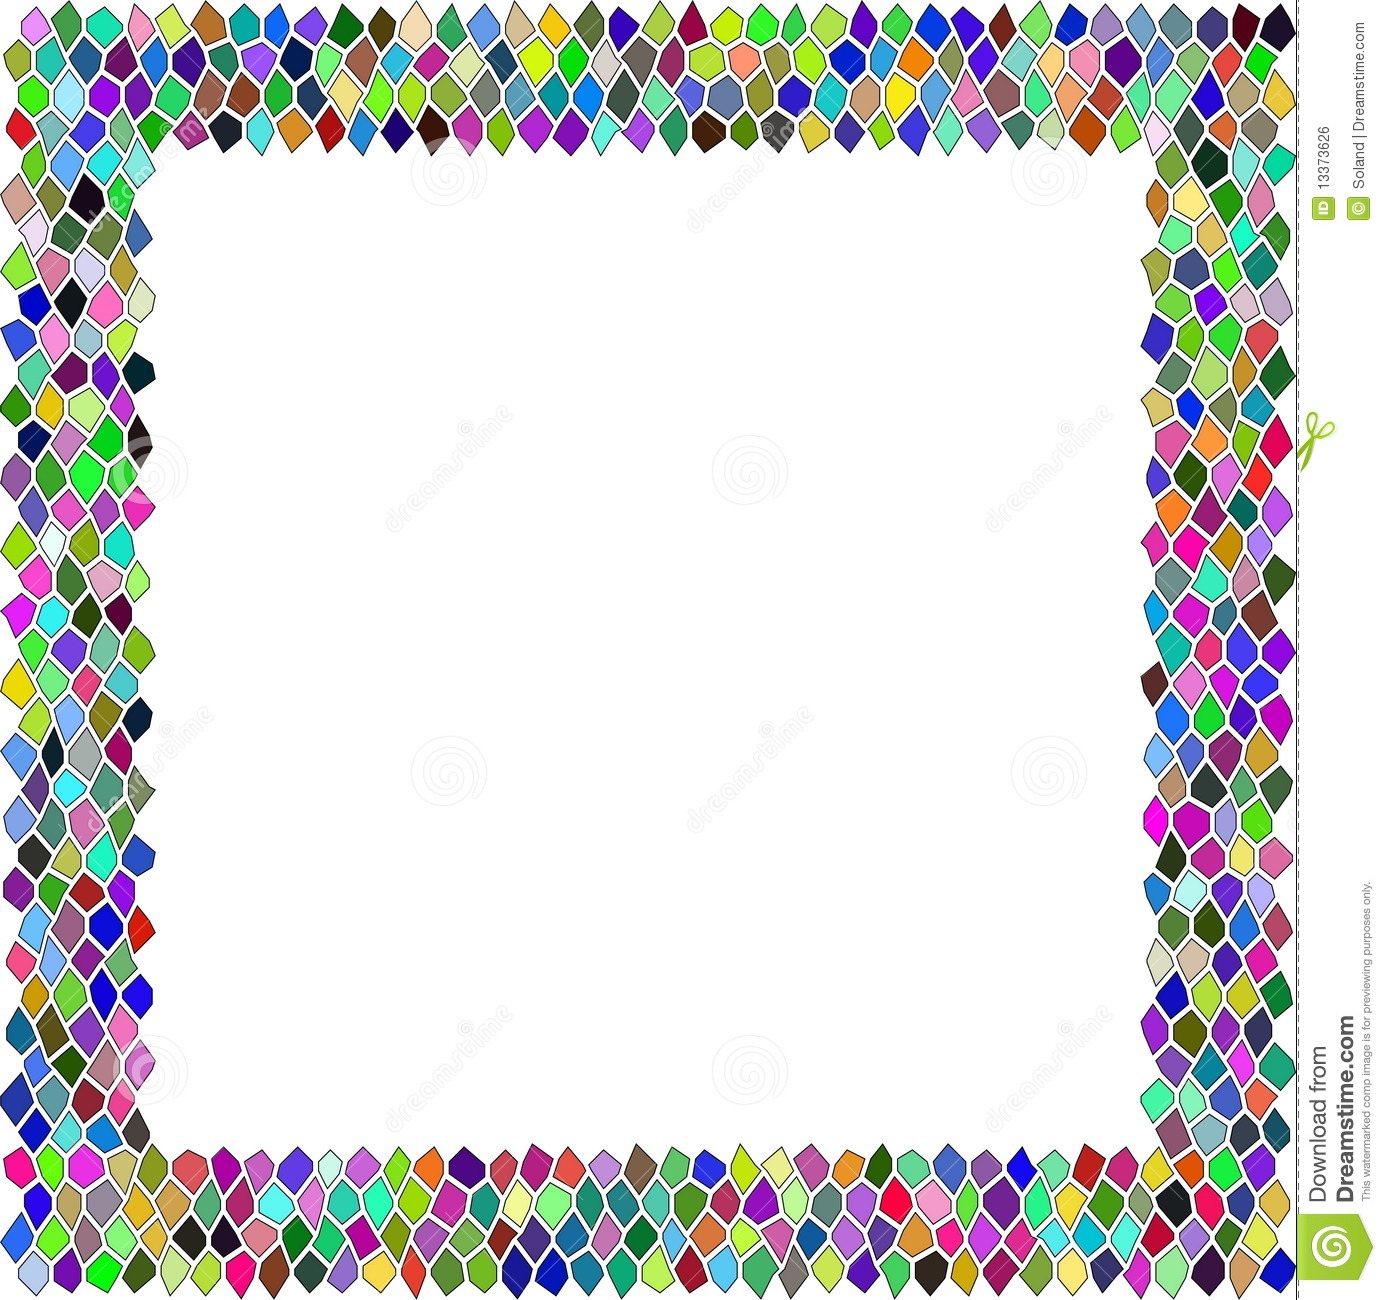 Abstract clipart border Borders borders abstract Clipart abstract